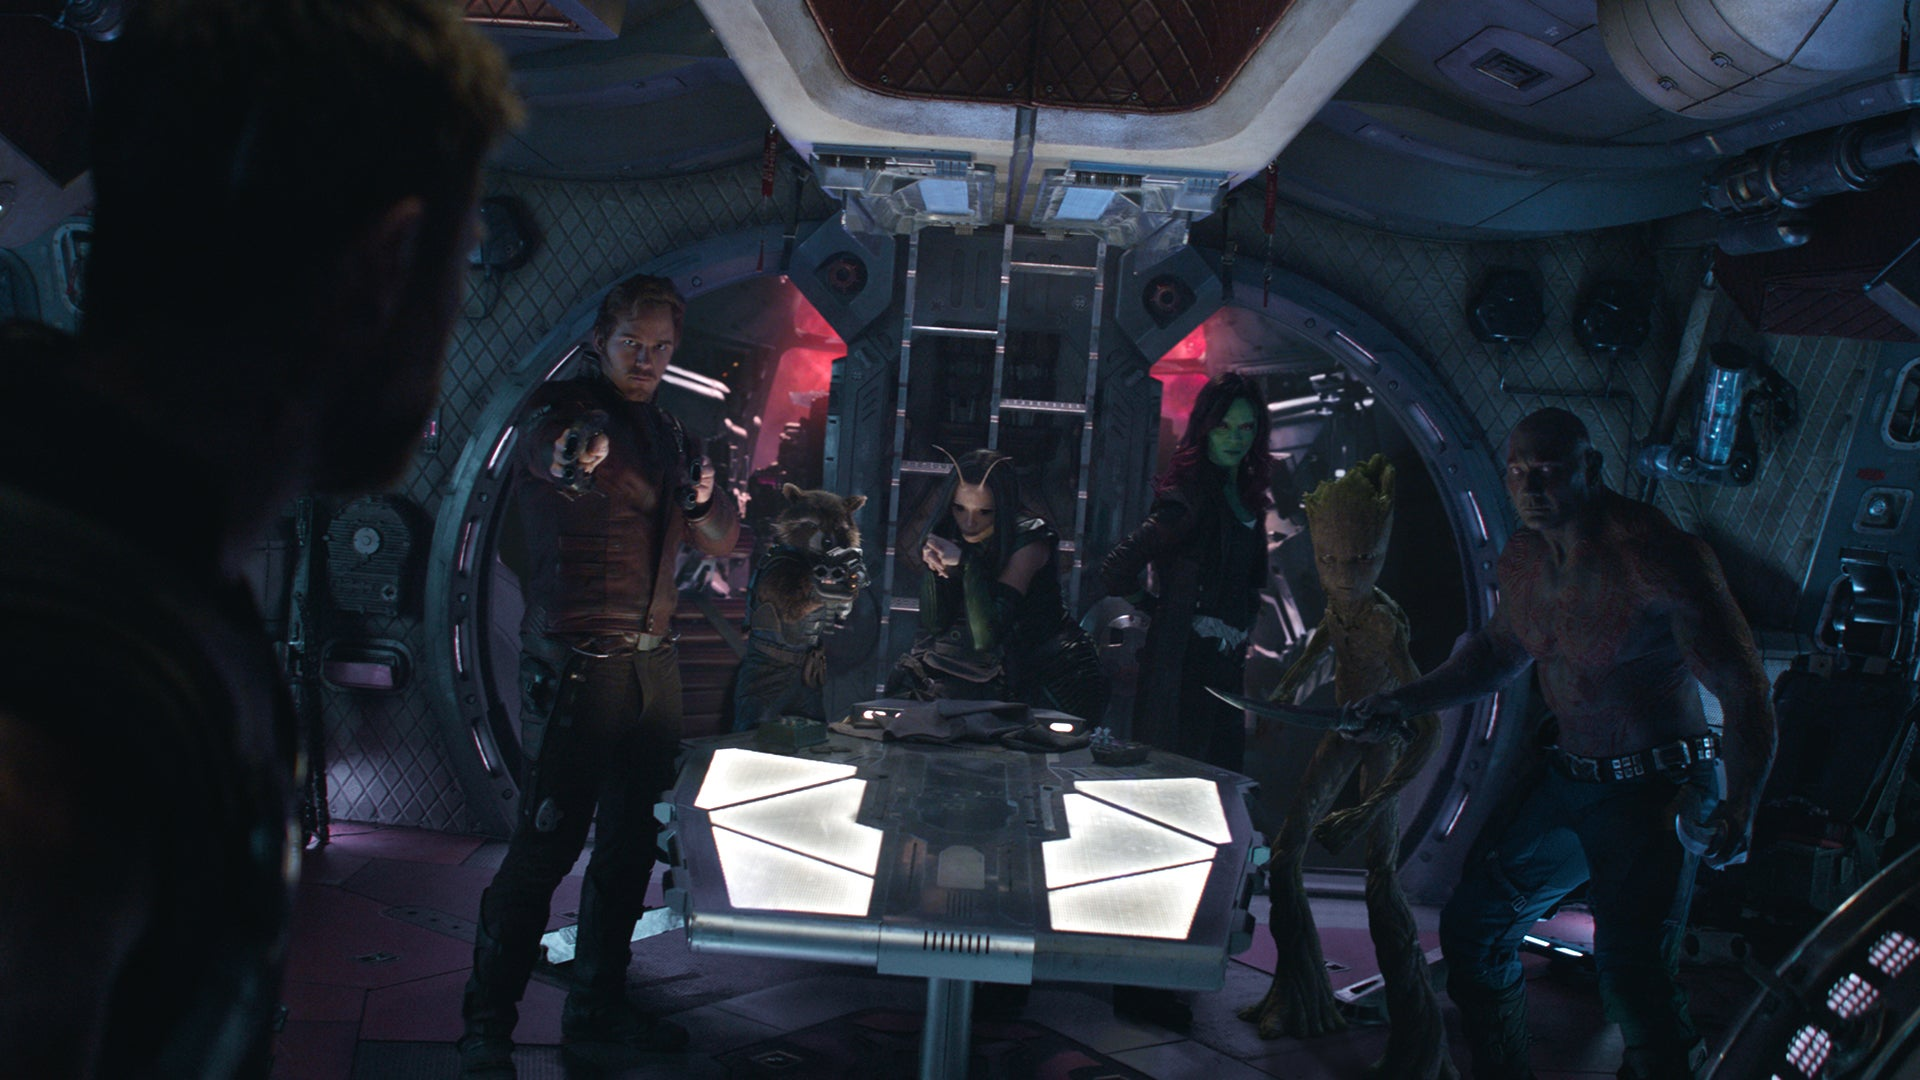 Watch The Russos Break Down Thor's First Meeting With The Guardians Of The Galaxy